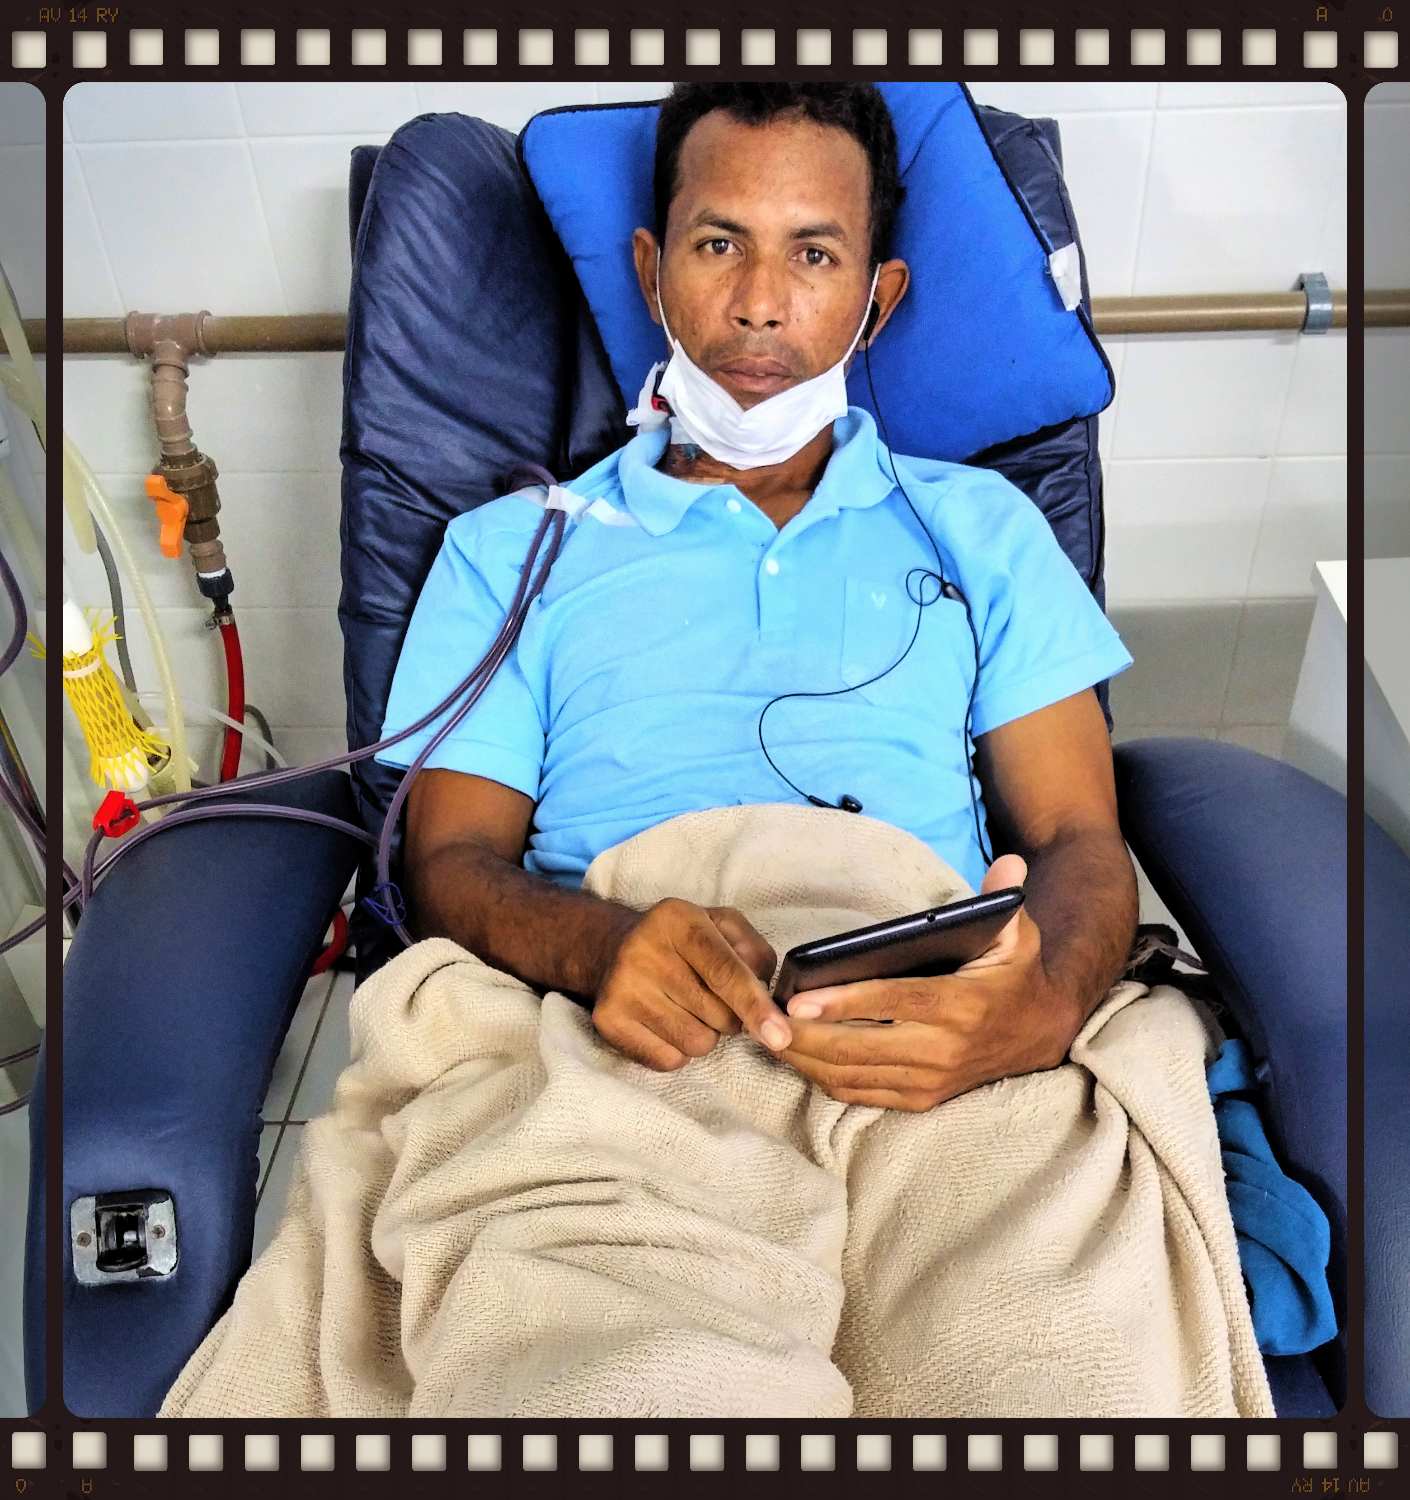 Neu having Hemodialysis